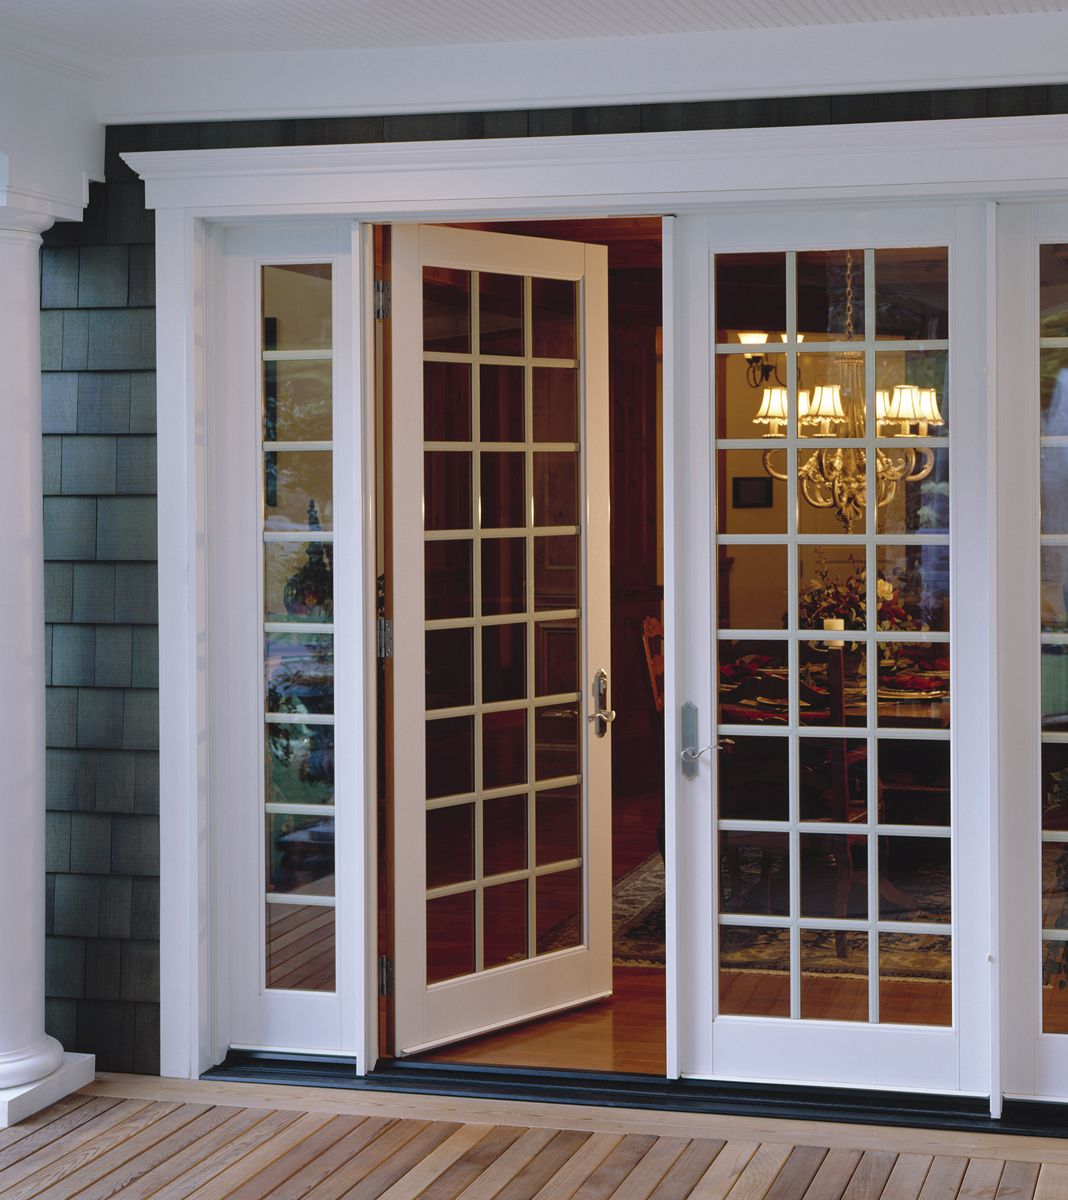 17 Best images about To Adore French Doors on Pinterest | Ultra series,  Windows and - Milgard Patio Doors Roselawnlutheran